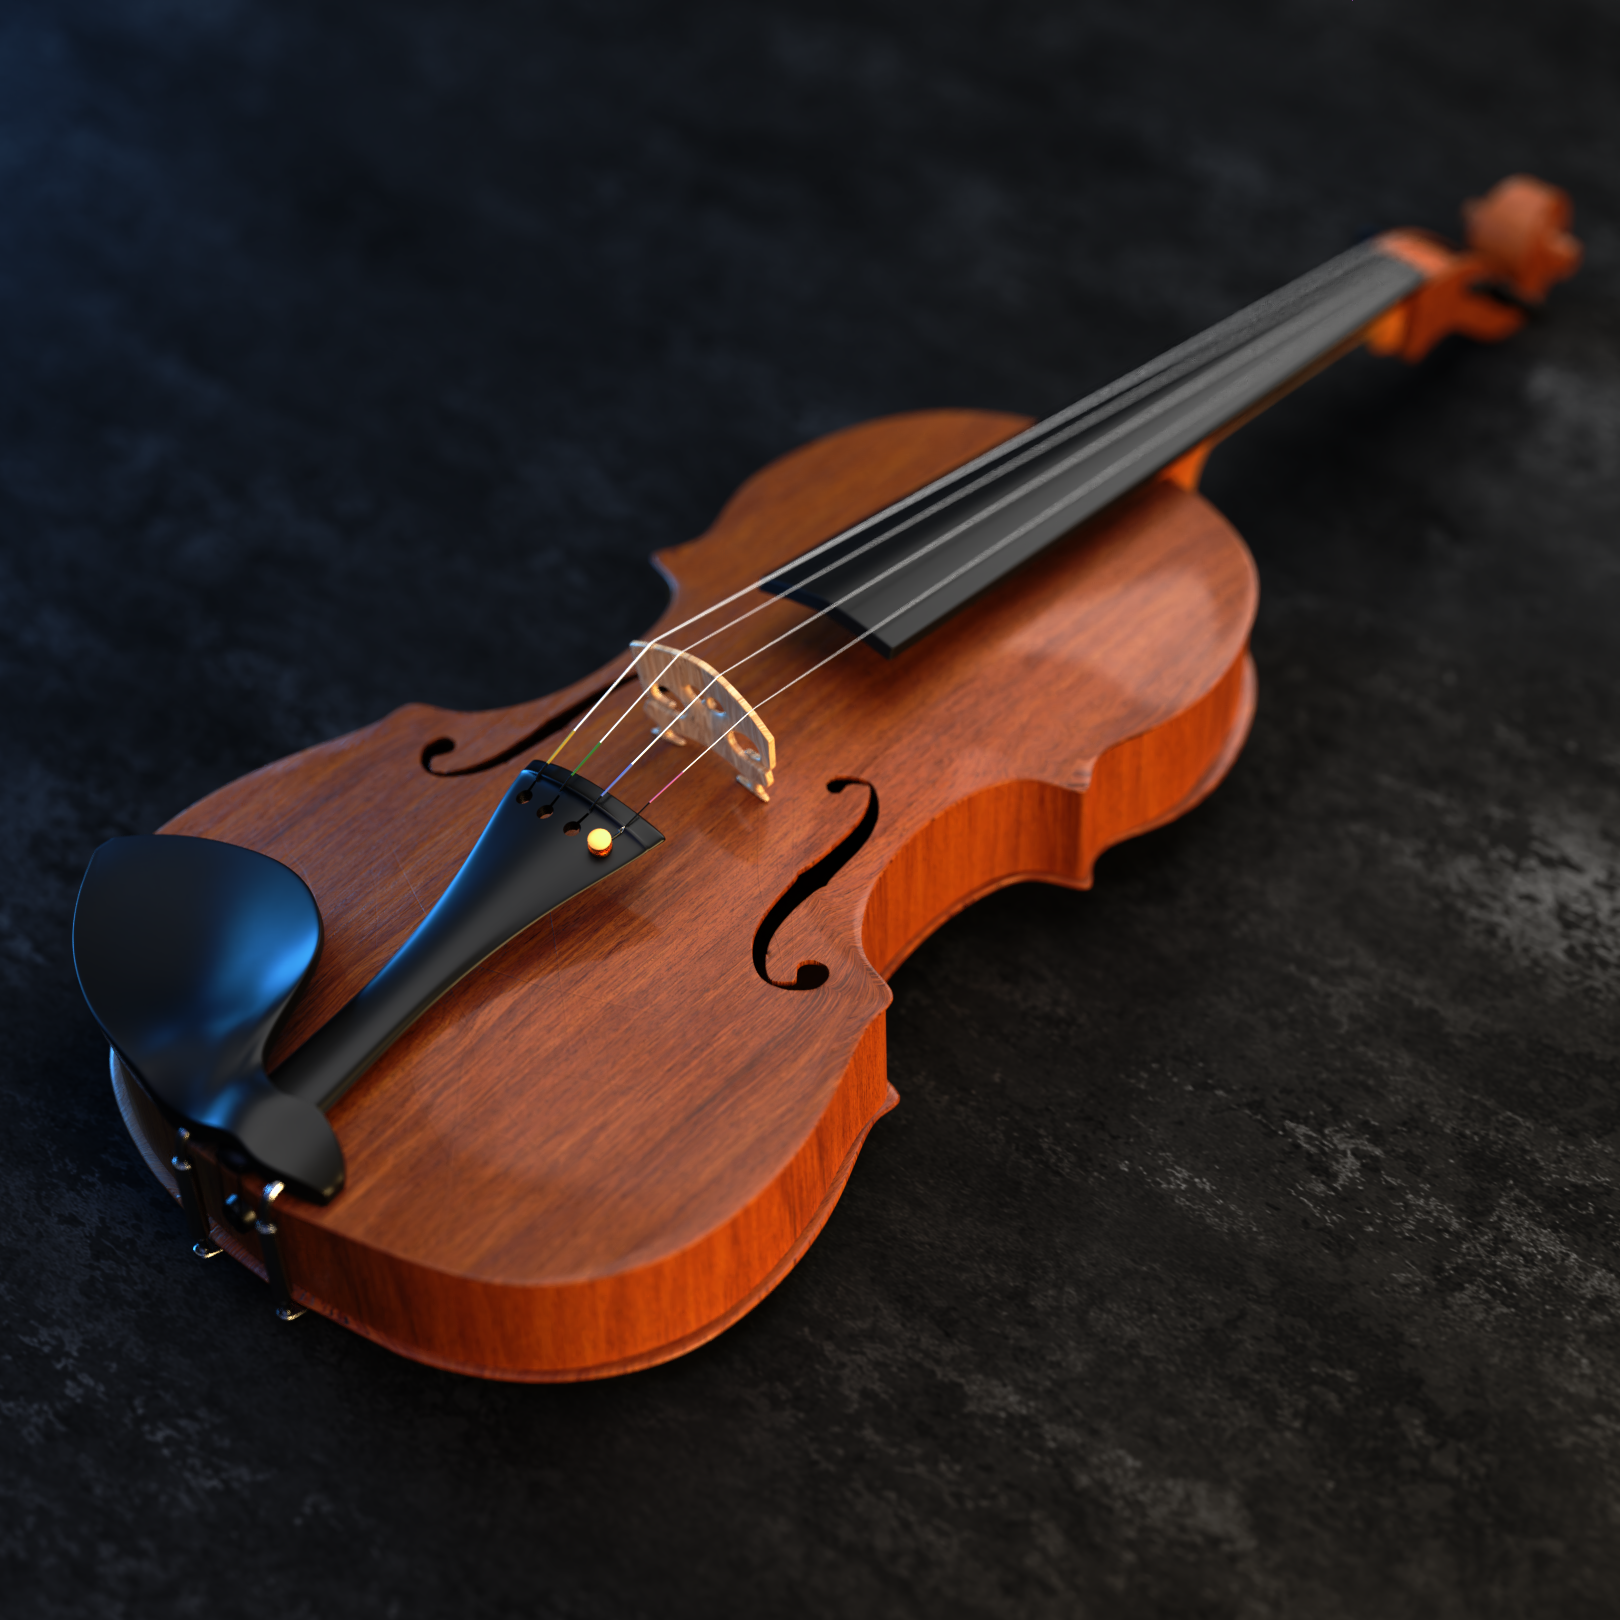 Realistic Violin  preview image 2